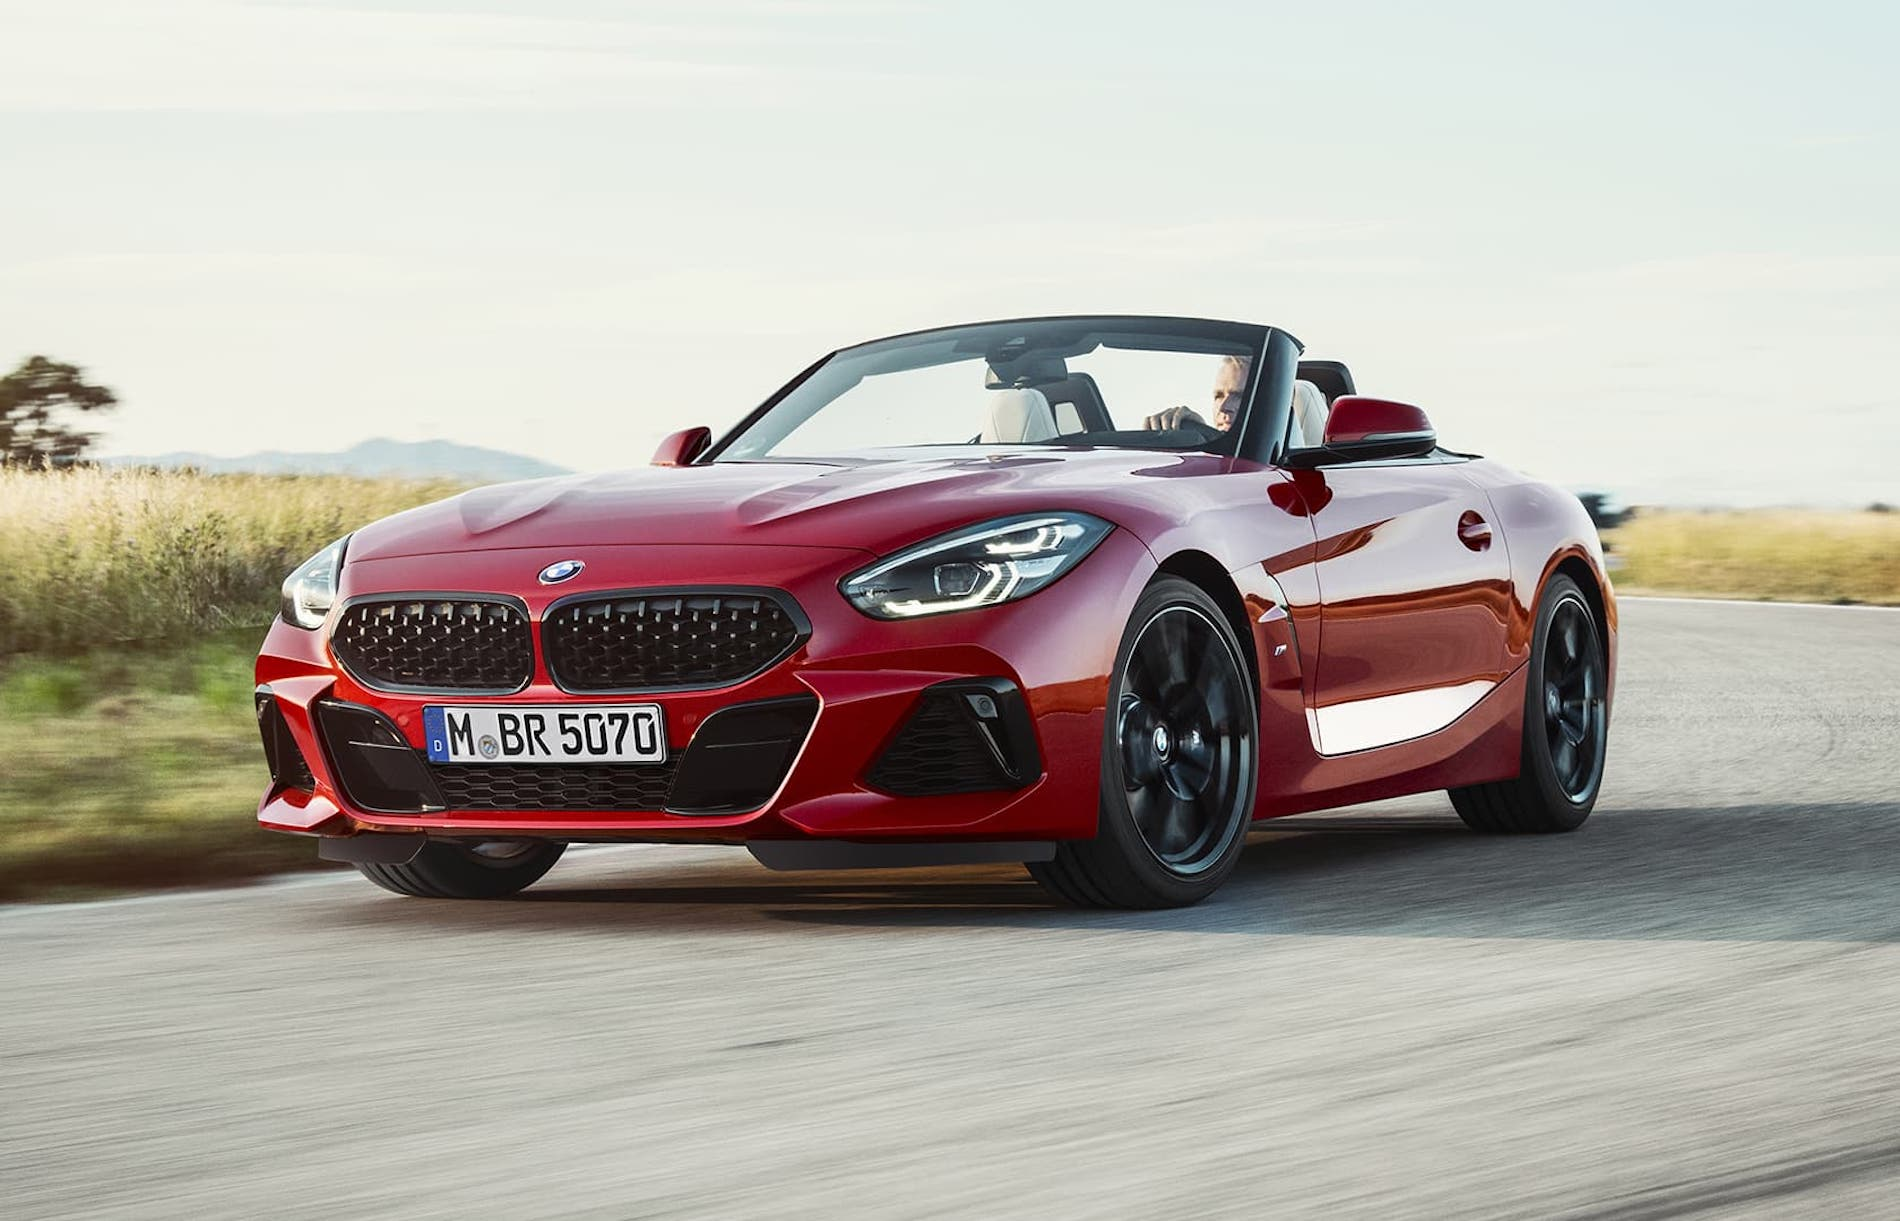 A view of a Red 2021 BMW Z4 Convertible